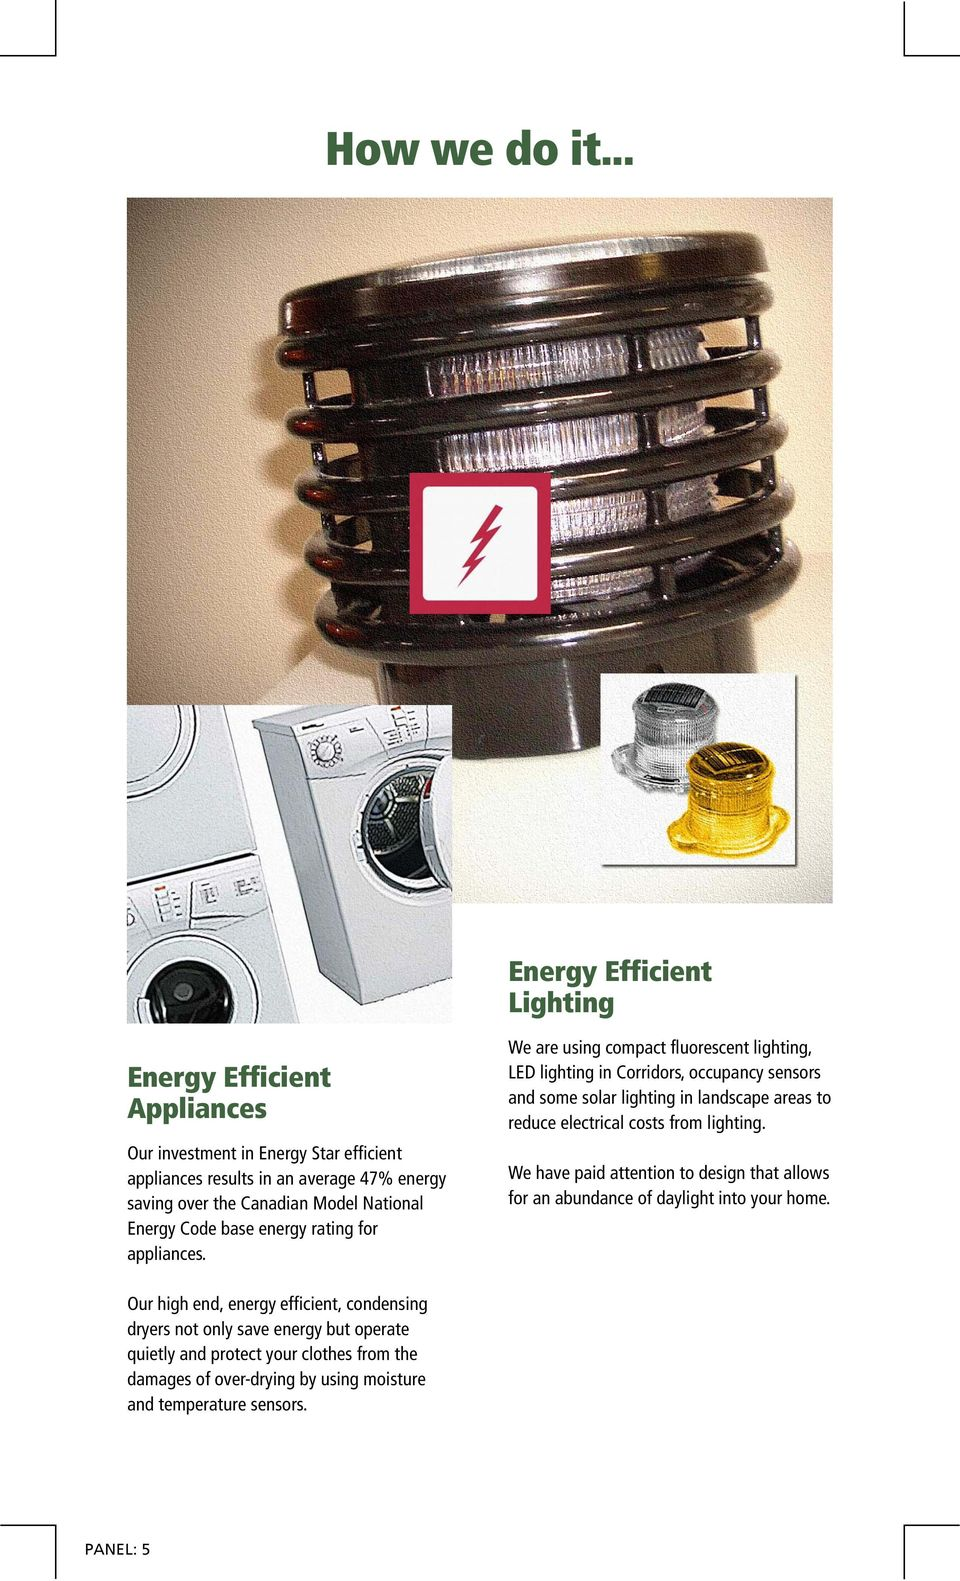 National Energy Code base energy rating for appliances.